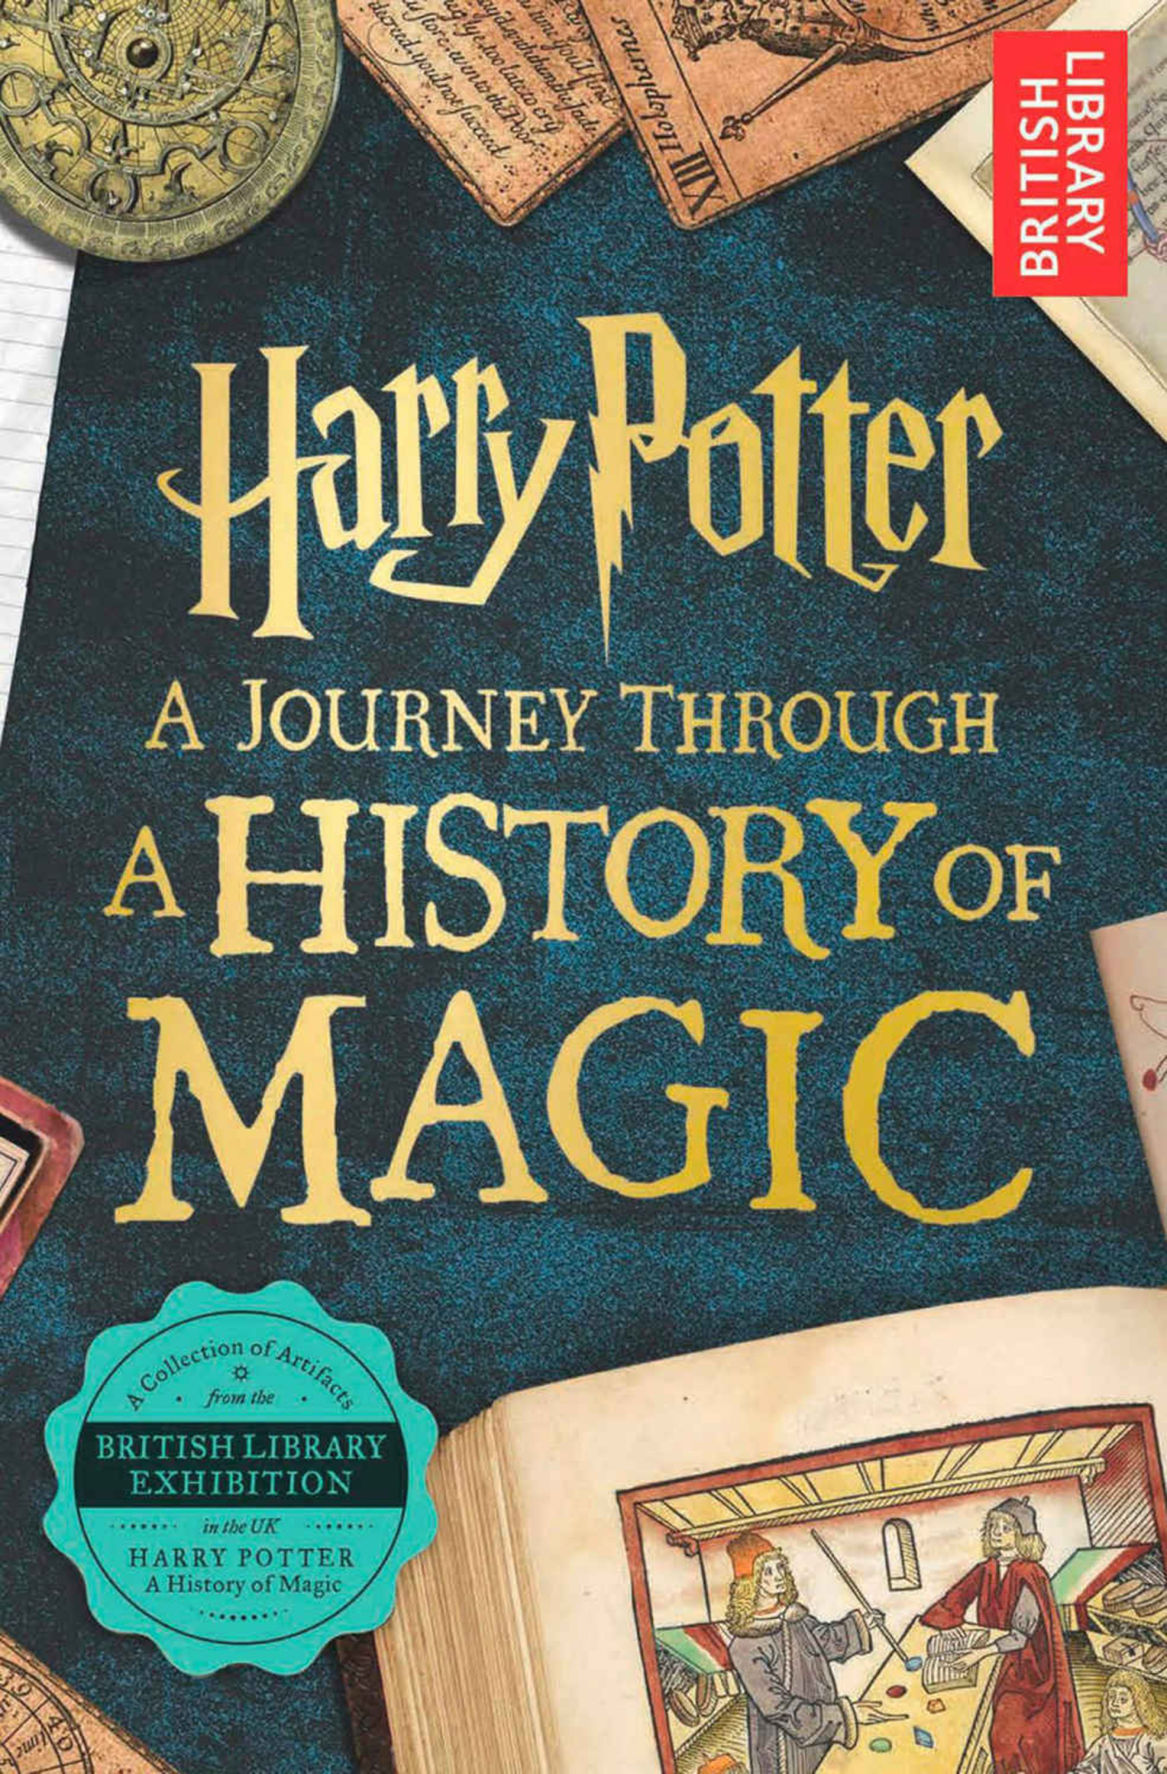 BOOKS BOOK-HARRYPOTTER-HISTORY-MAGIC-REVIEW TB